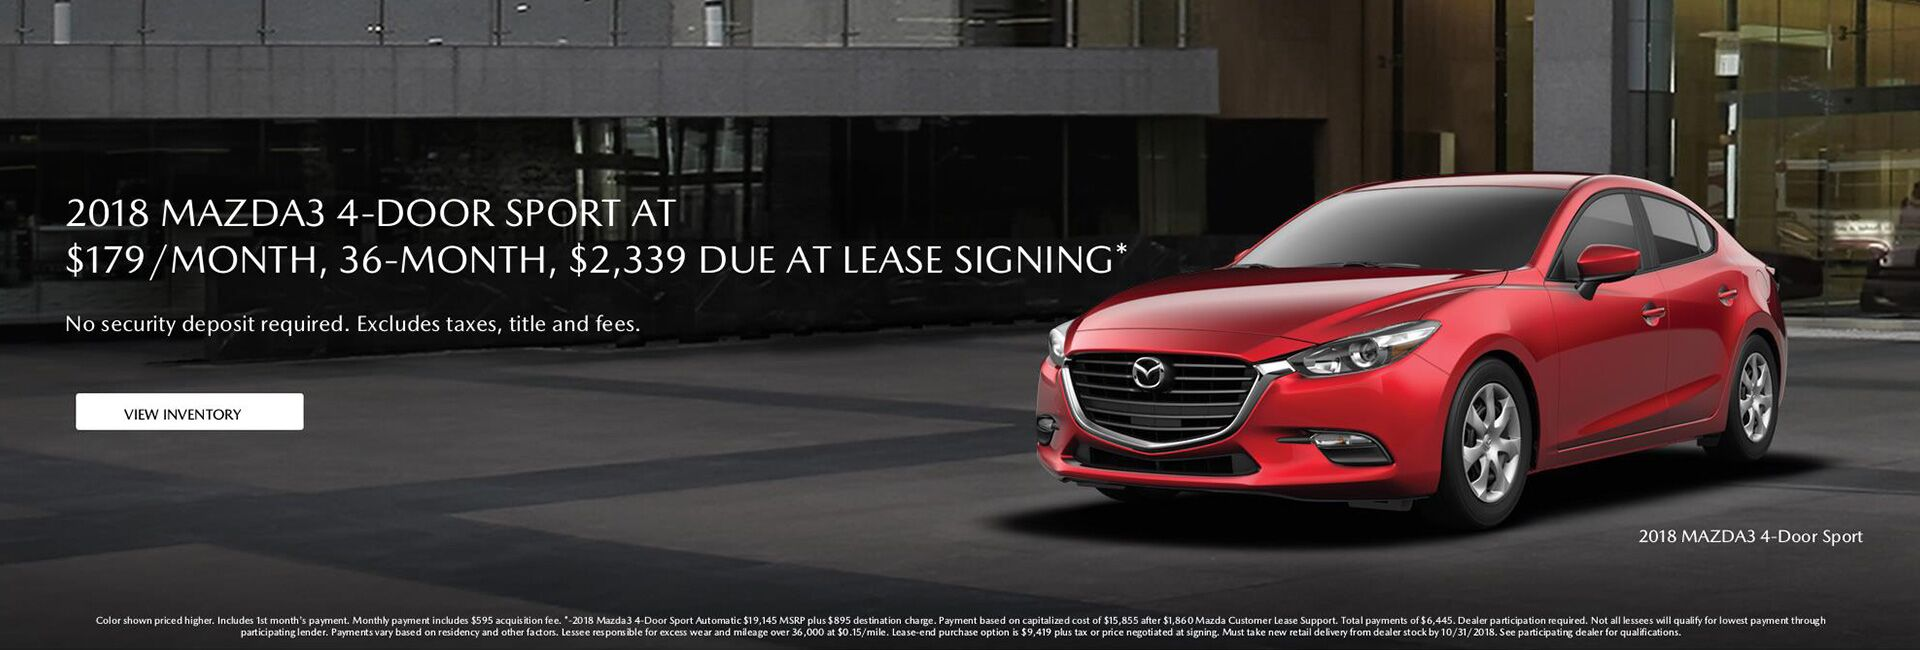 Mazda Dealership Irvine CA | Used Cars Tuttle Click Mazda